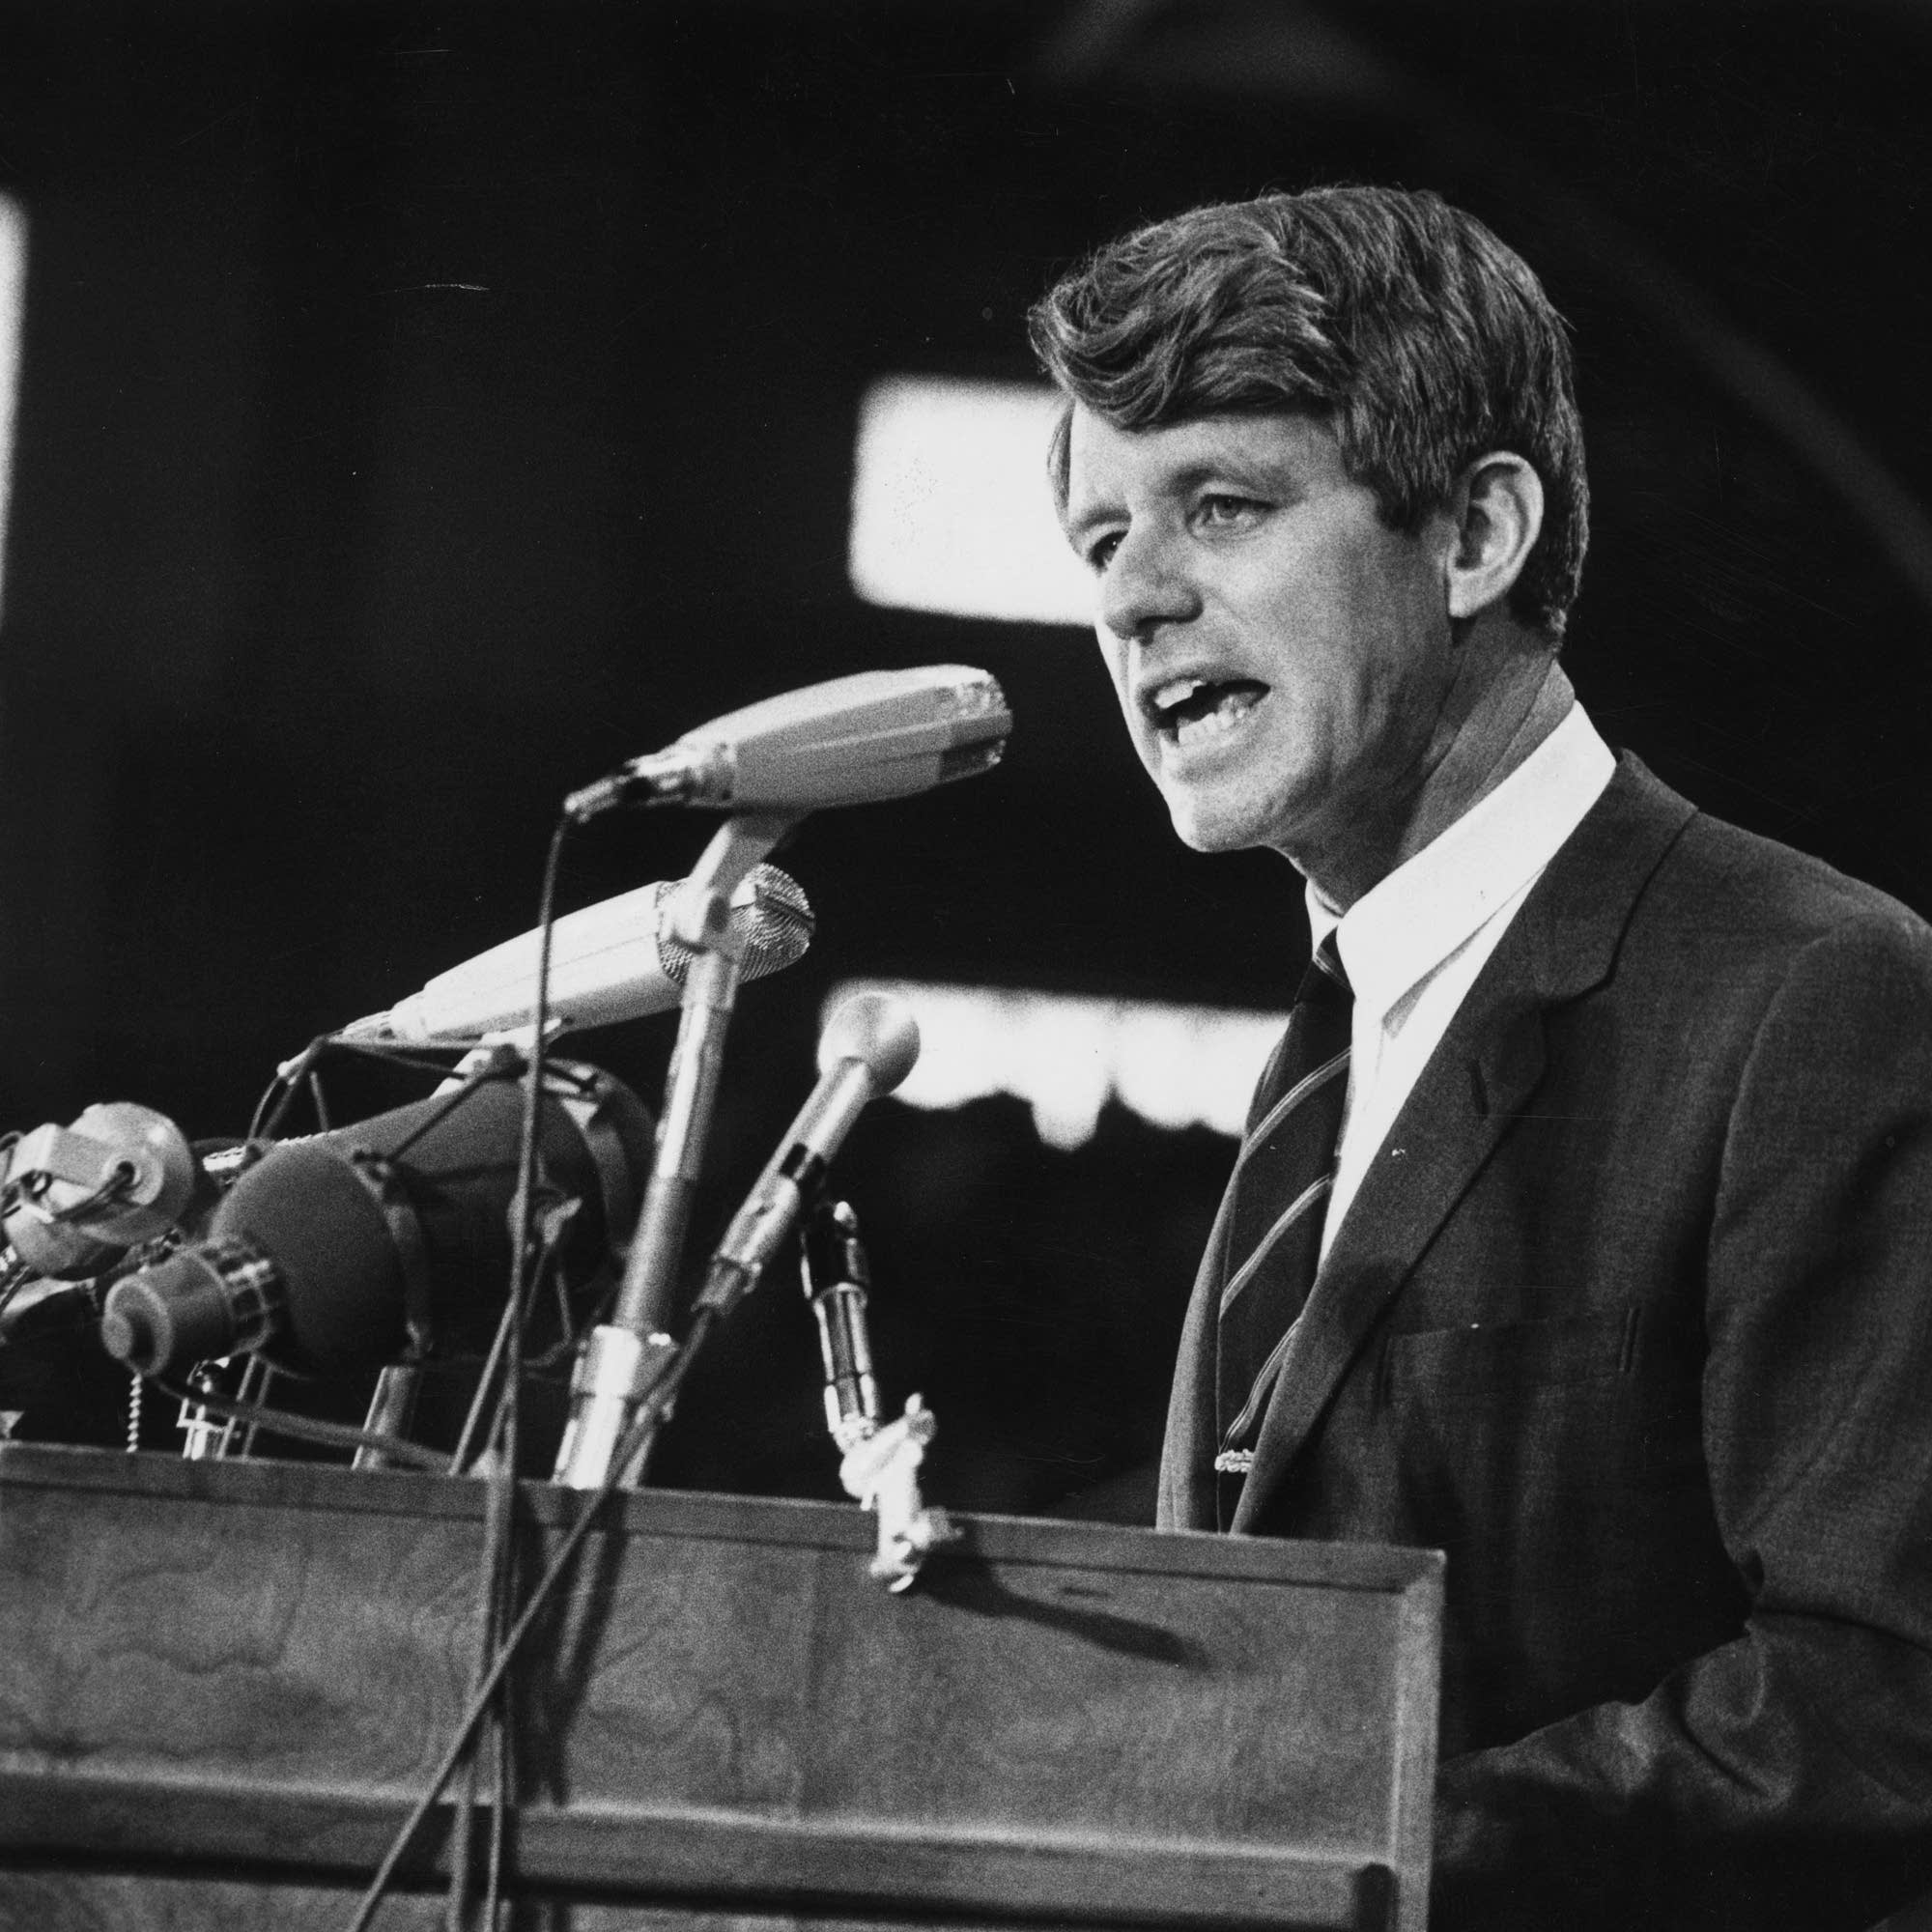 Robert F. Kennedy speaking at an election rally.